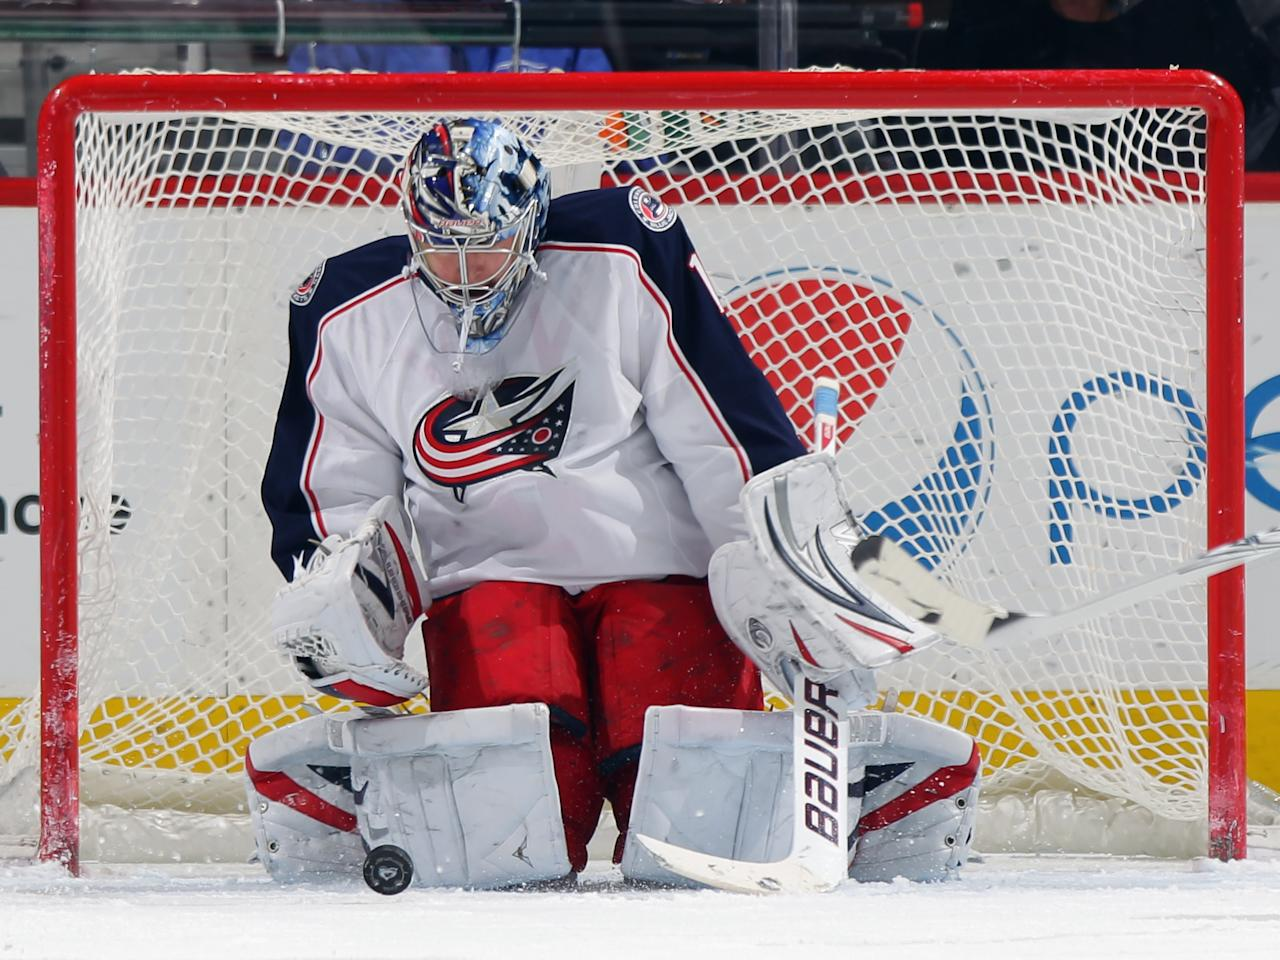 DENVER, CO - MARCH 01:  Goalie Steve Mason #1 of the Columbus Blue Jackets makes a save against the Colorado Avalanche at the Pepsi Center on March 1, 2012 in Denver, Colorado. Mason had 33 saves as he shut out the Avalanche 2-0.  (Photo by Doug Pensinger/Getty Images)